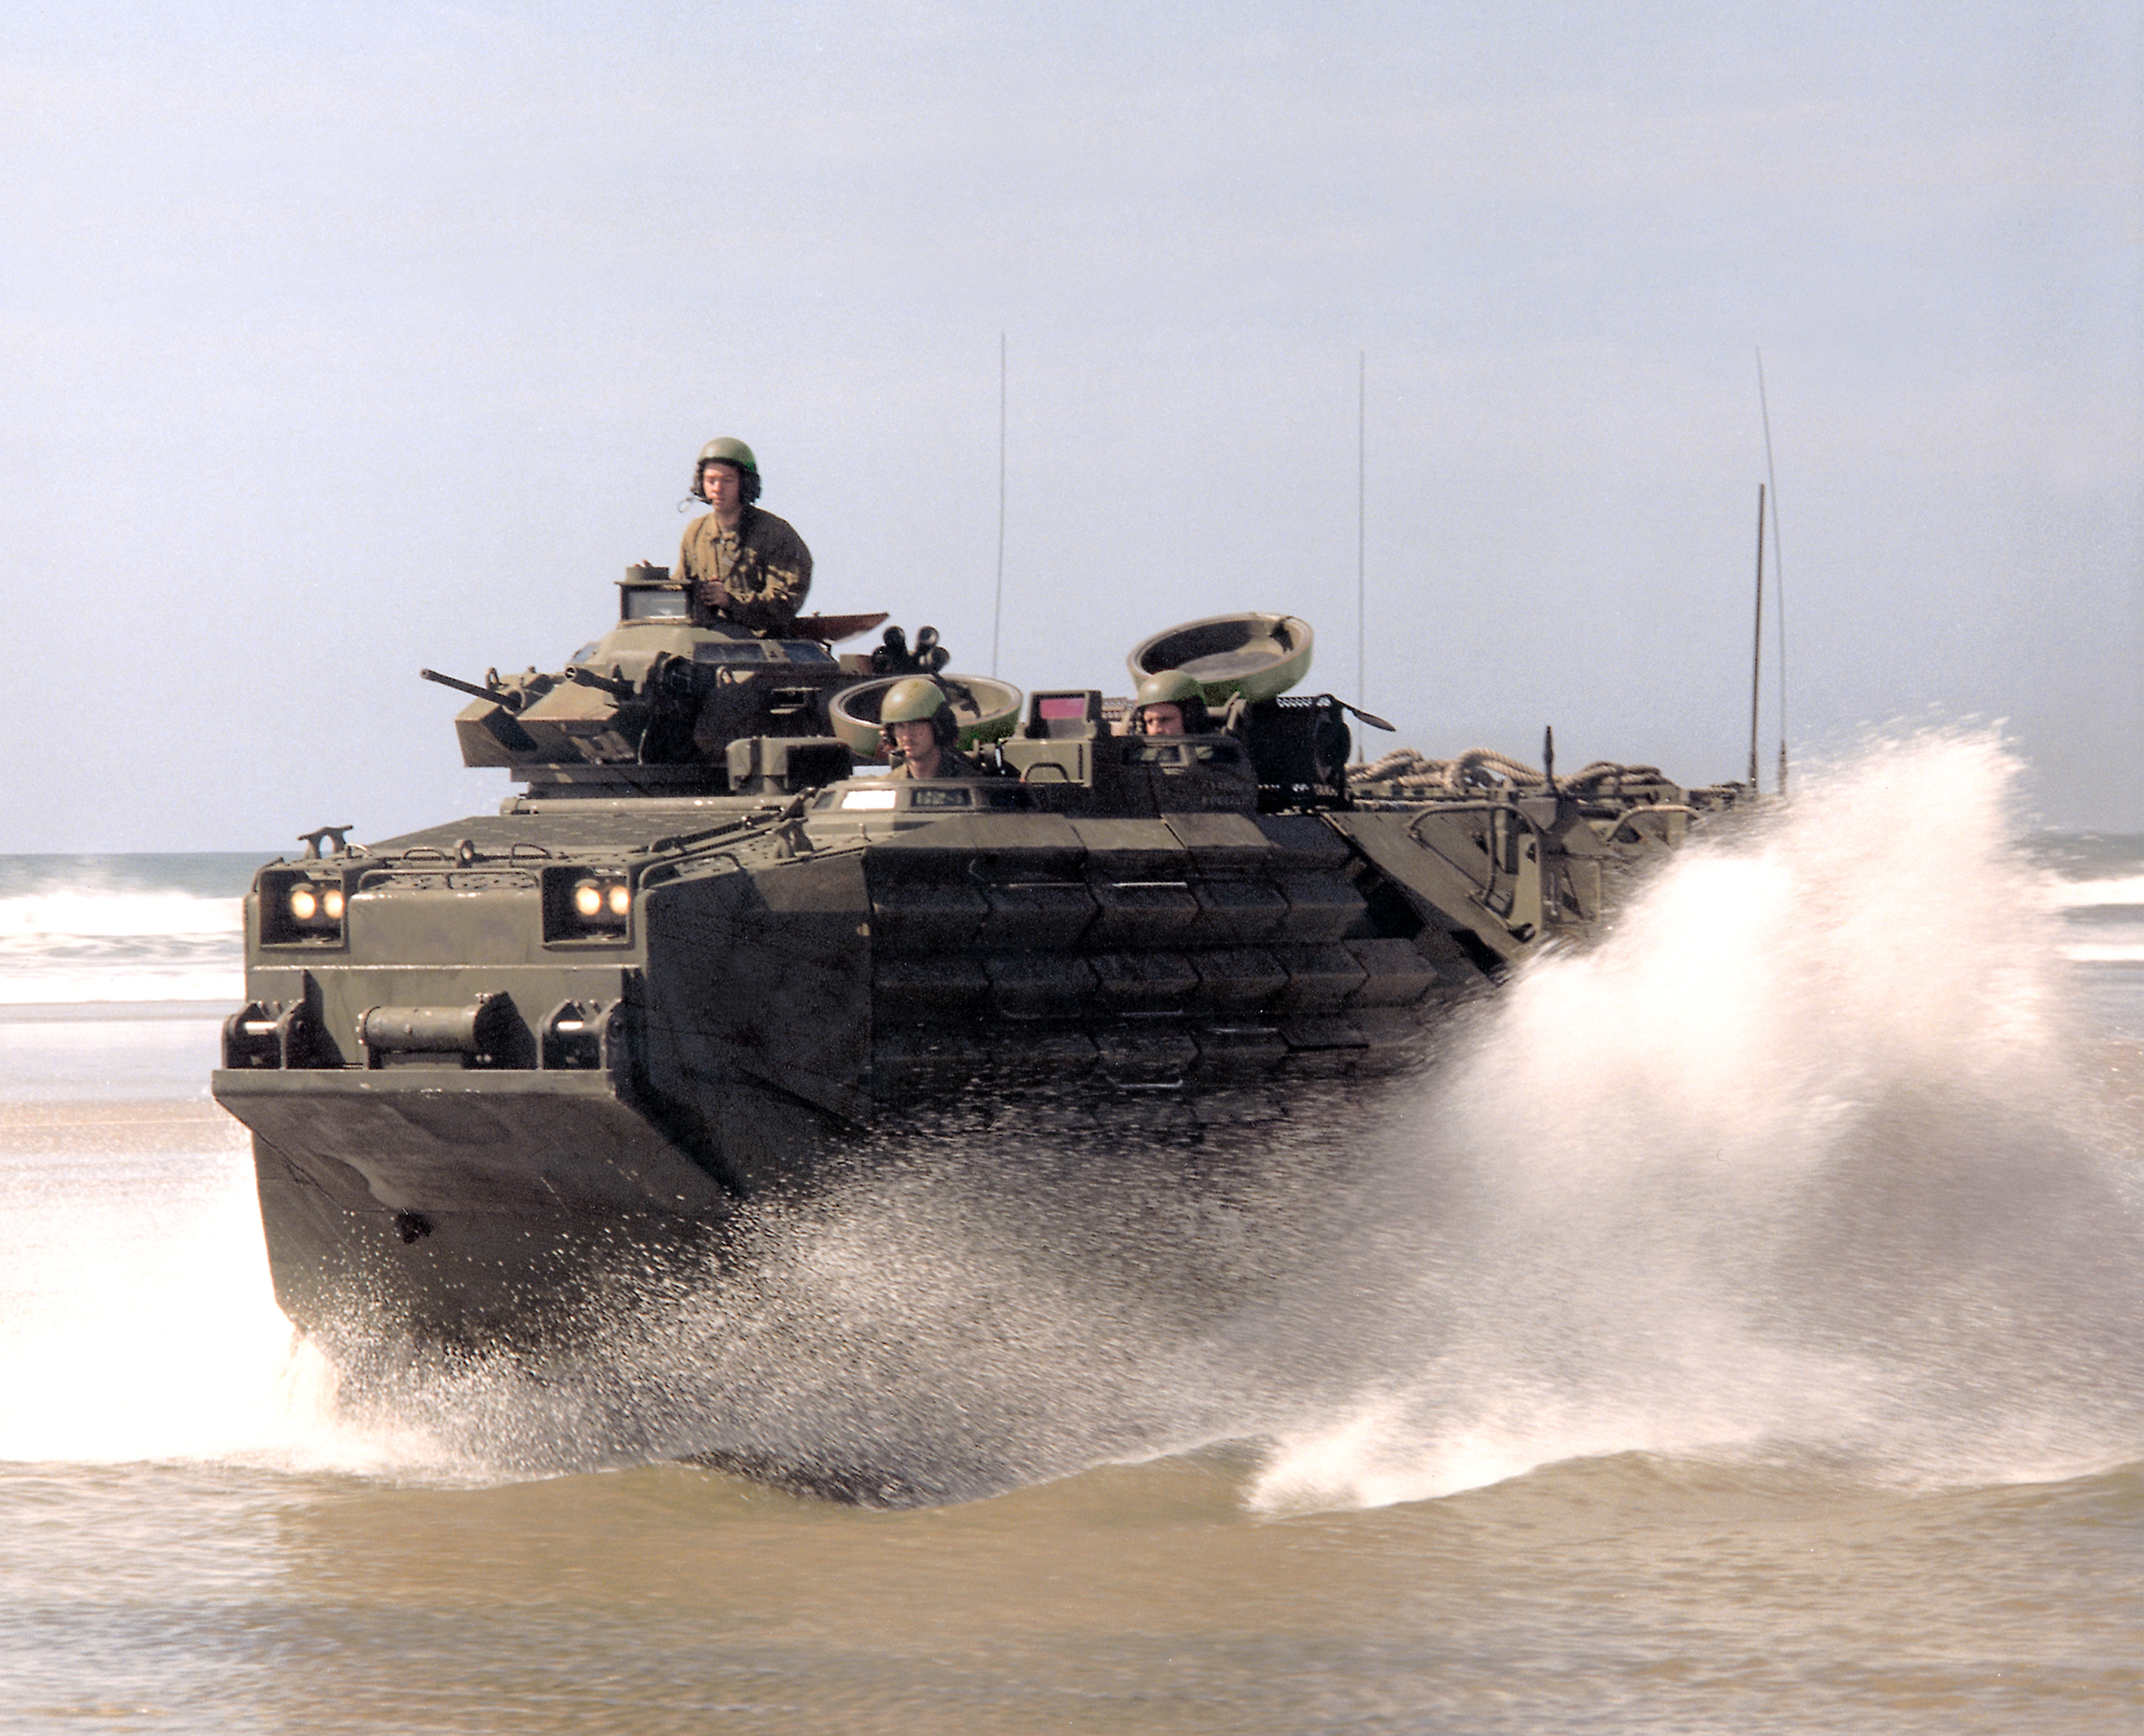 BAE Systems will provide engineering design and development work related to survivability upgrades for the U.S. Marine Corps' AAV7A1 Assault Amphibious Vehicle (AAV). (Photo: BAE Systems)